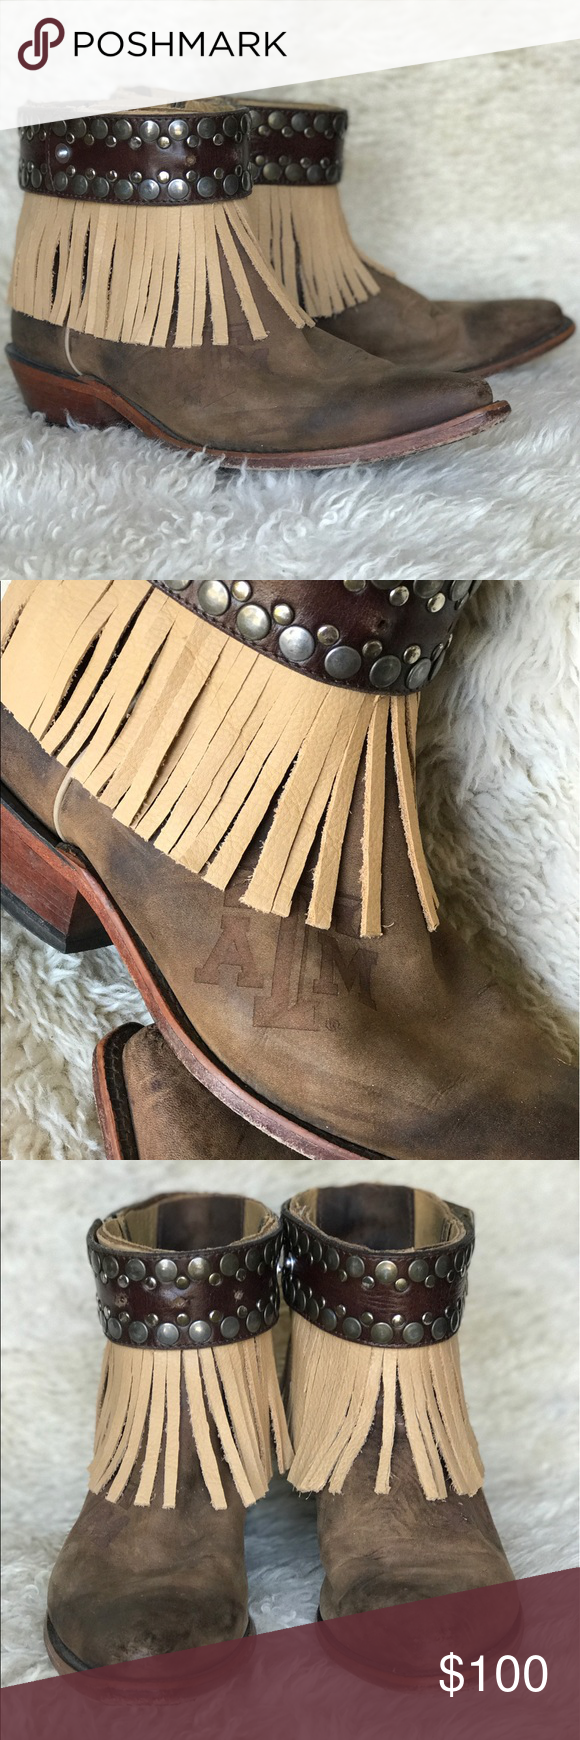 Texas A&M custom reworked boots Size 9 but would fit a 7.5/8 best. These are a custom reworked, hand cut fringe pair of boots! Perfect for festival season!!! Haeli Mae'd Shoes Ankle Boots & Booties